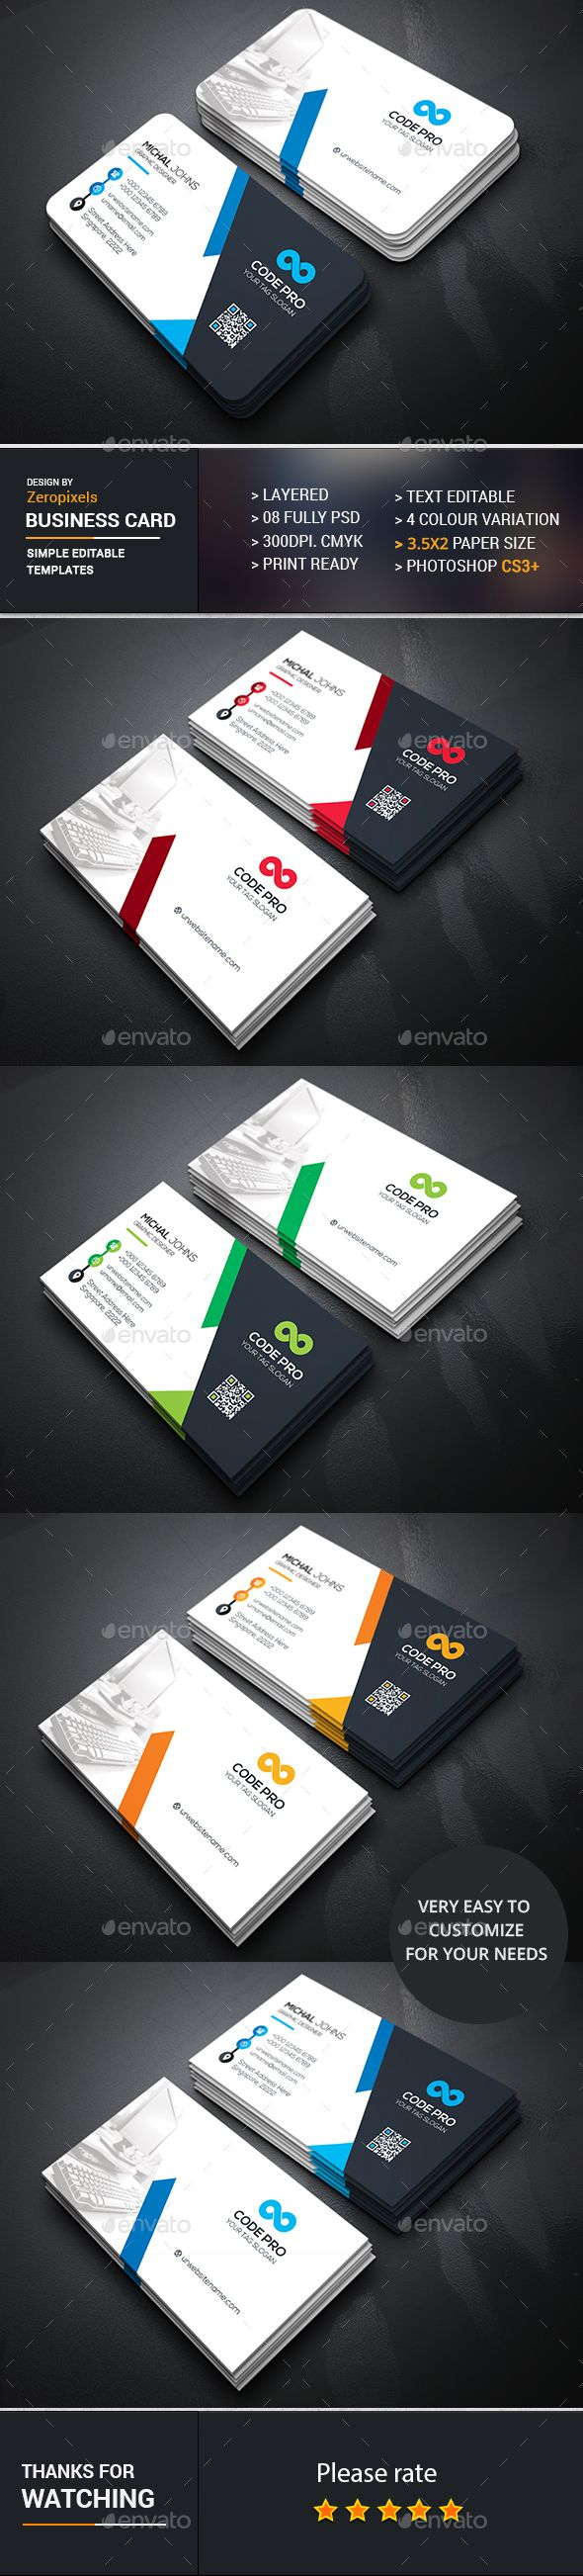 37 best employee\'s card images on Pinterest | Business cards, Name ...